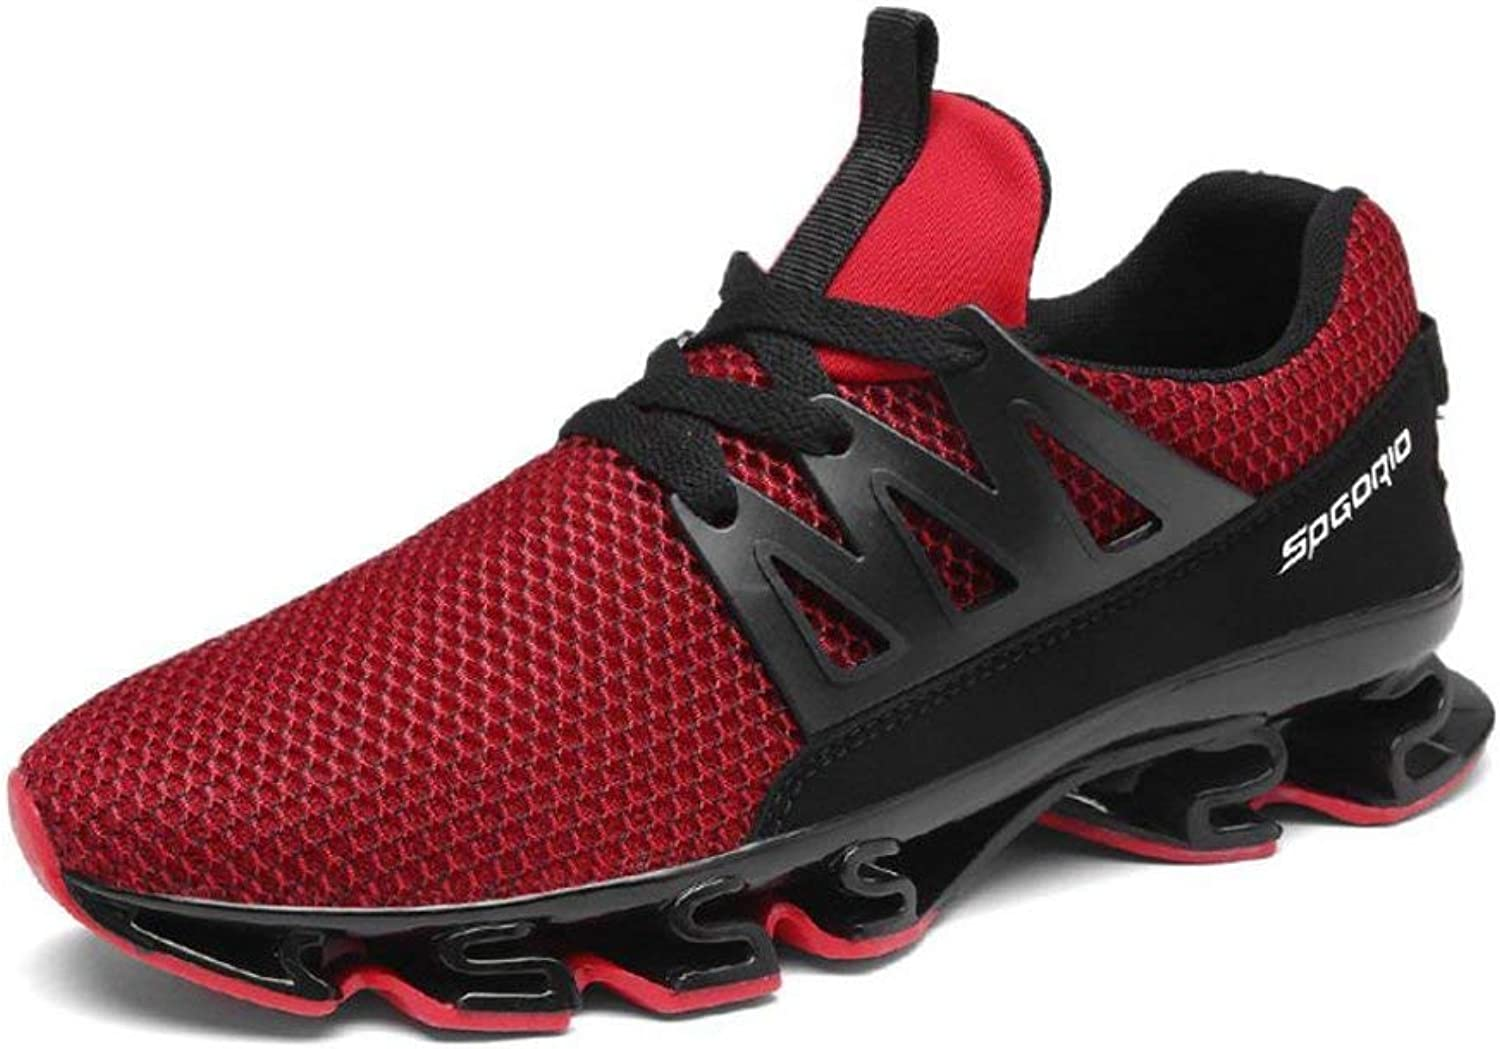 FuweiEncore Men's Trainers Running shoes, Casual Mesh-Athletic Sneakers, Lightweight Sport shoes, Breathable Gym Fitness (color  B, Size  47) (color   B, Size   41)